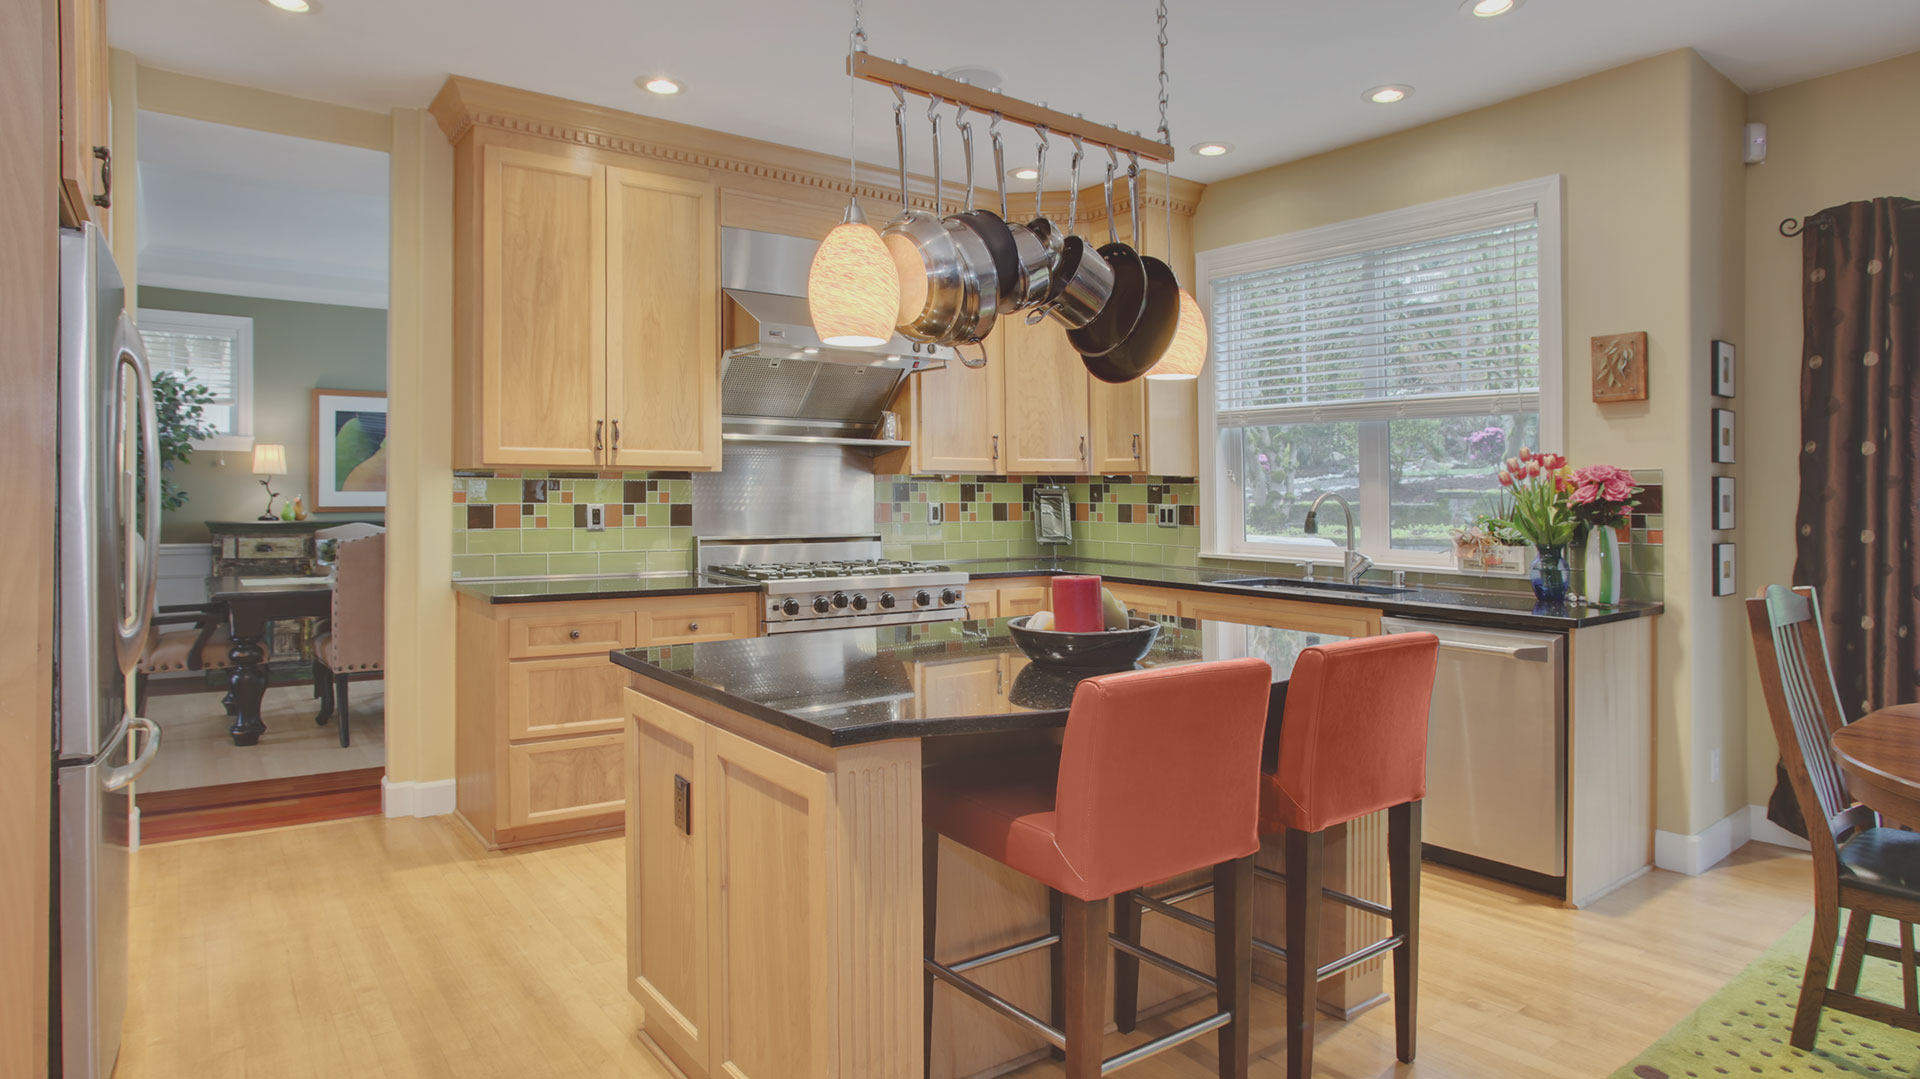 Existing kitchen cleverly reconstructed.